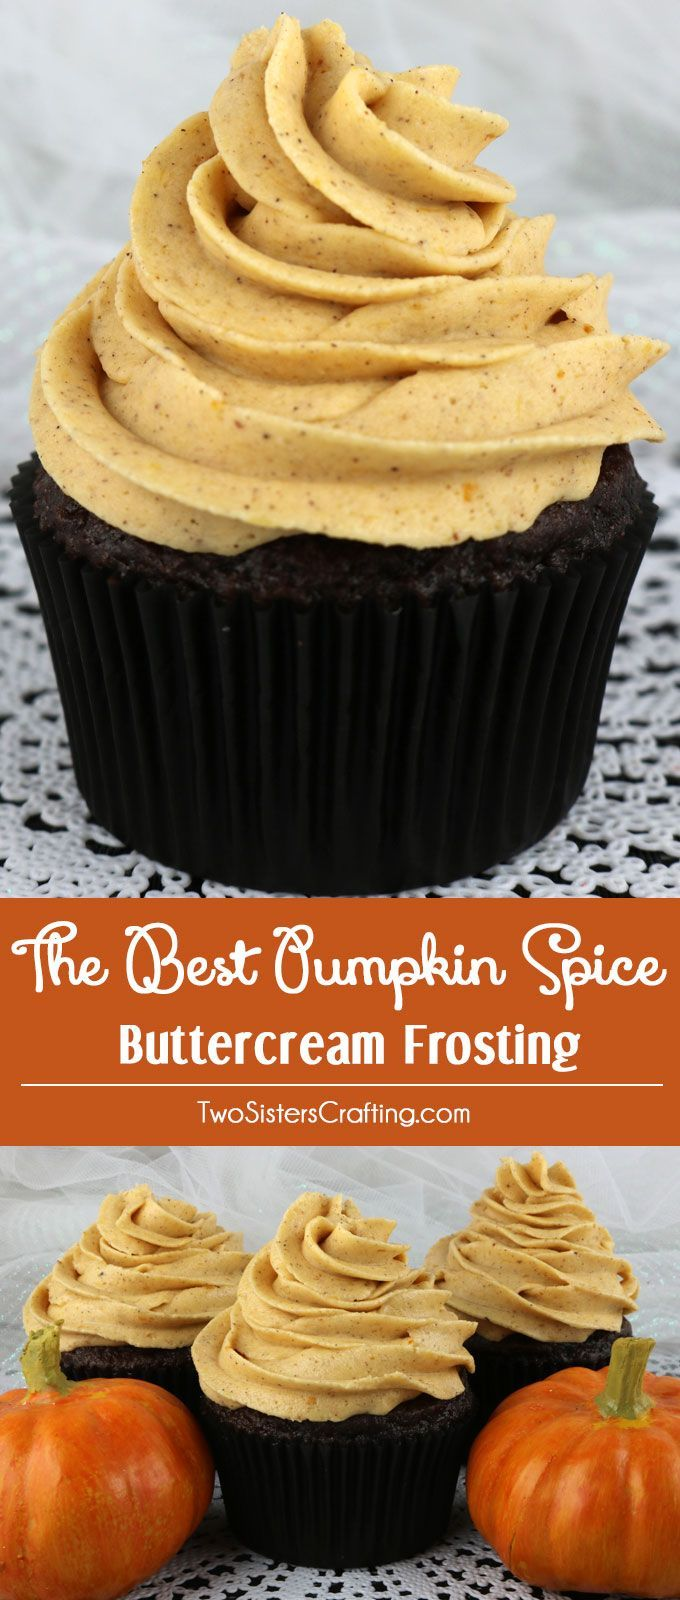 The Best Pumpkin Spice Buttercream Frosting